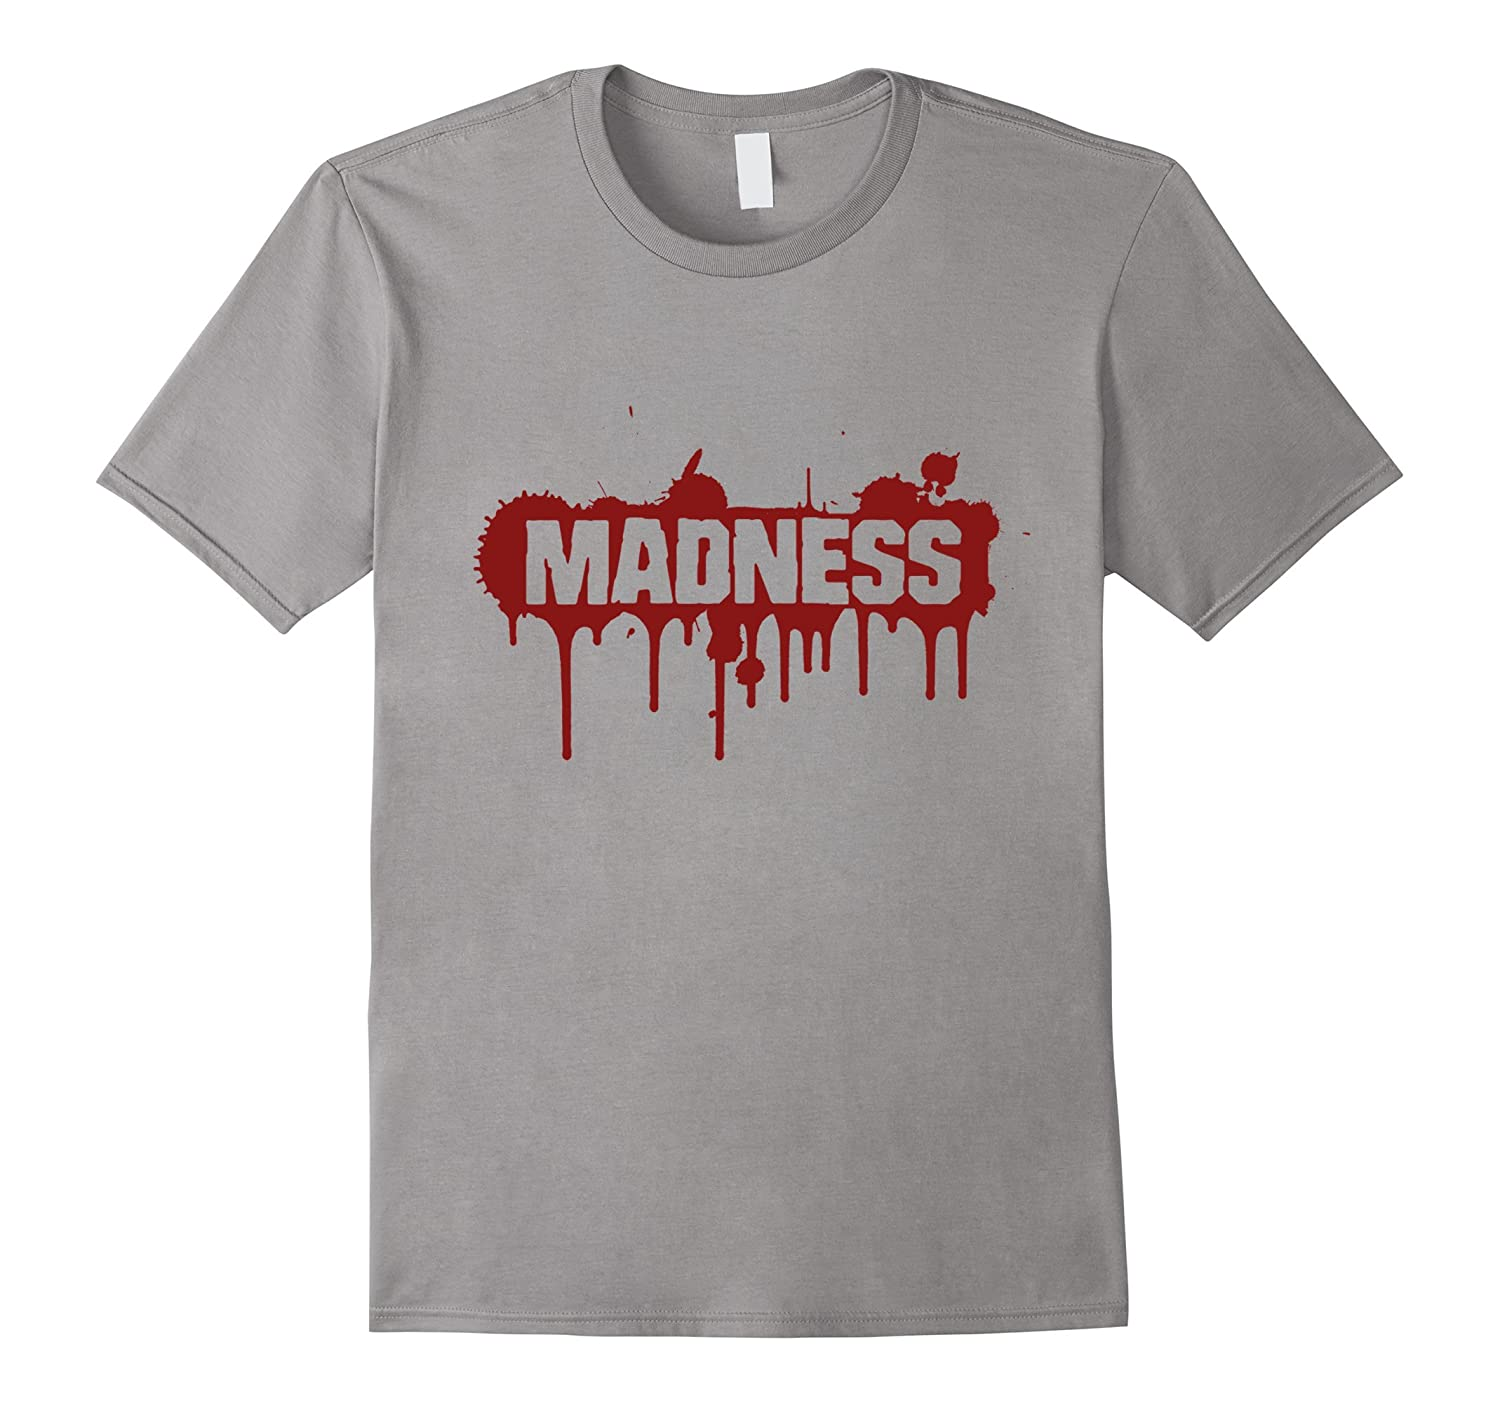 MADNESS Short Sleeve T-Shirt Mad Insane Loco-BN